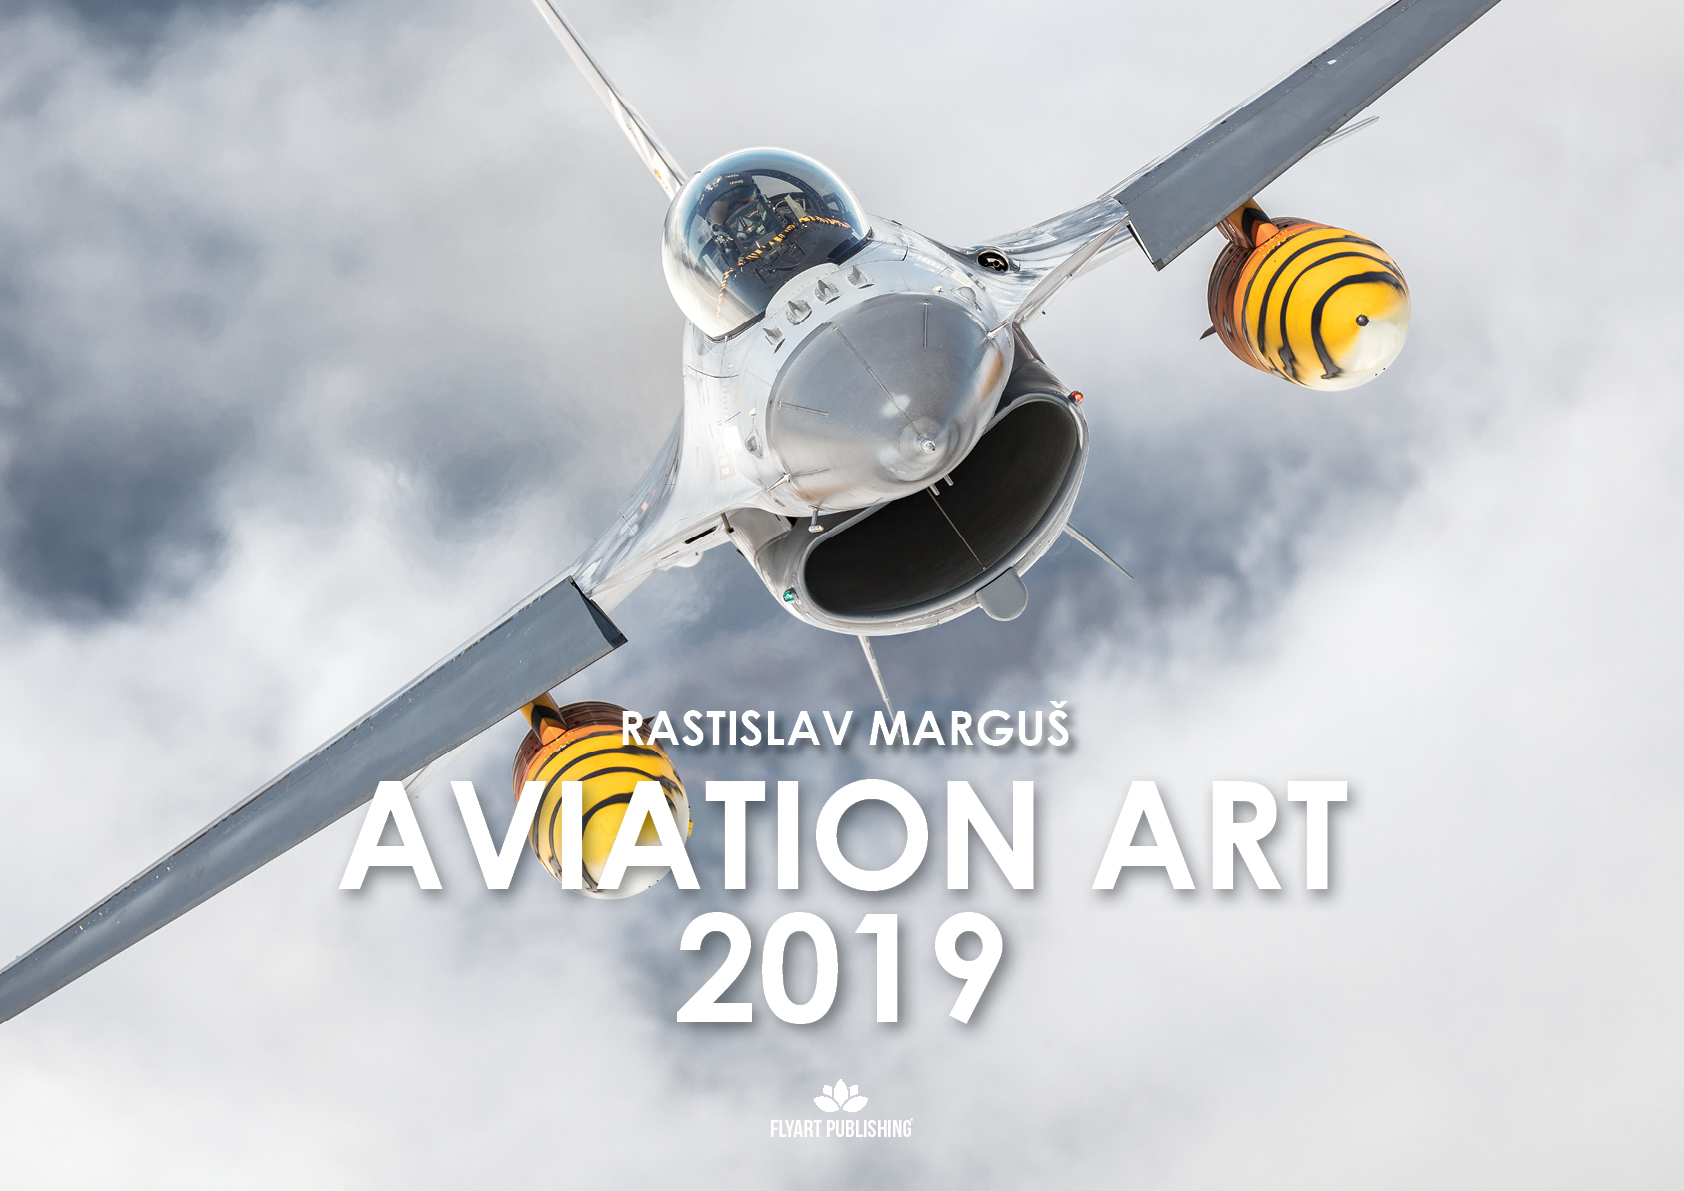 Aviation Art Calendar 2019